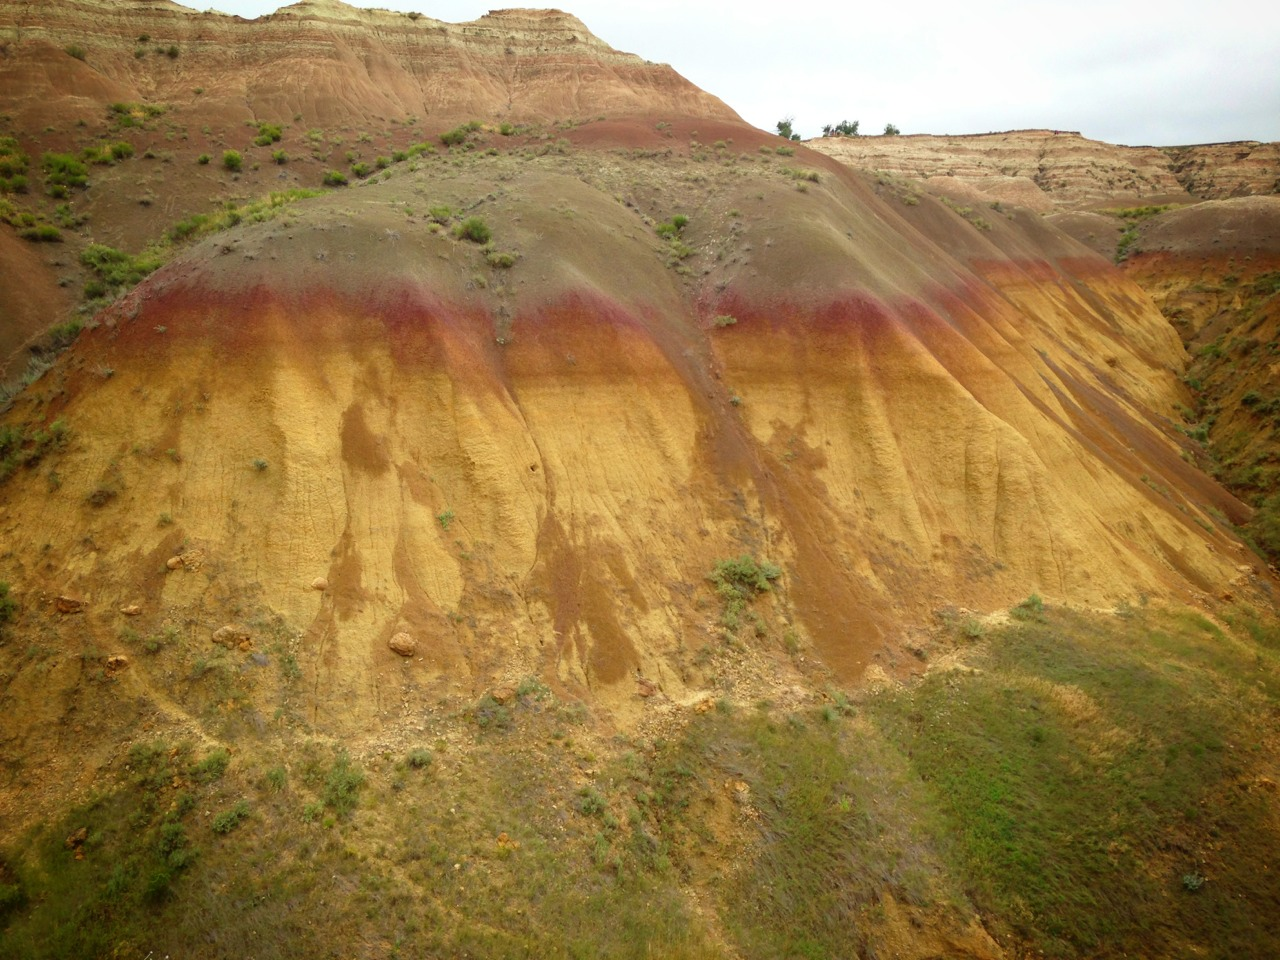 Gradient hills in the badlands